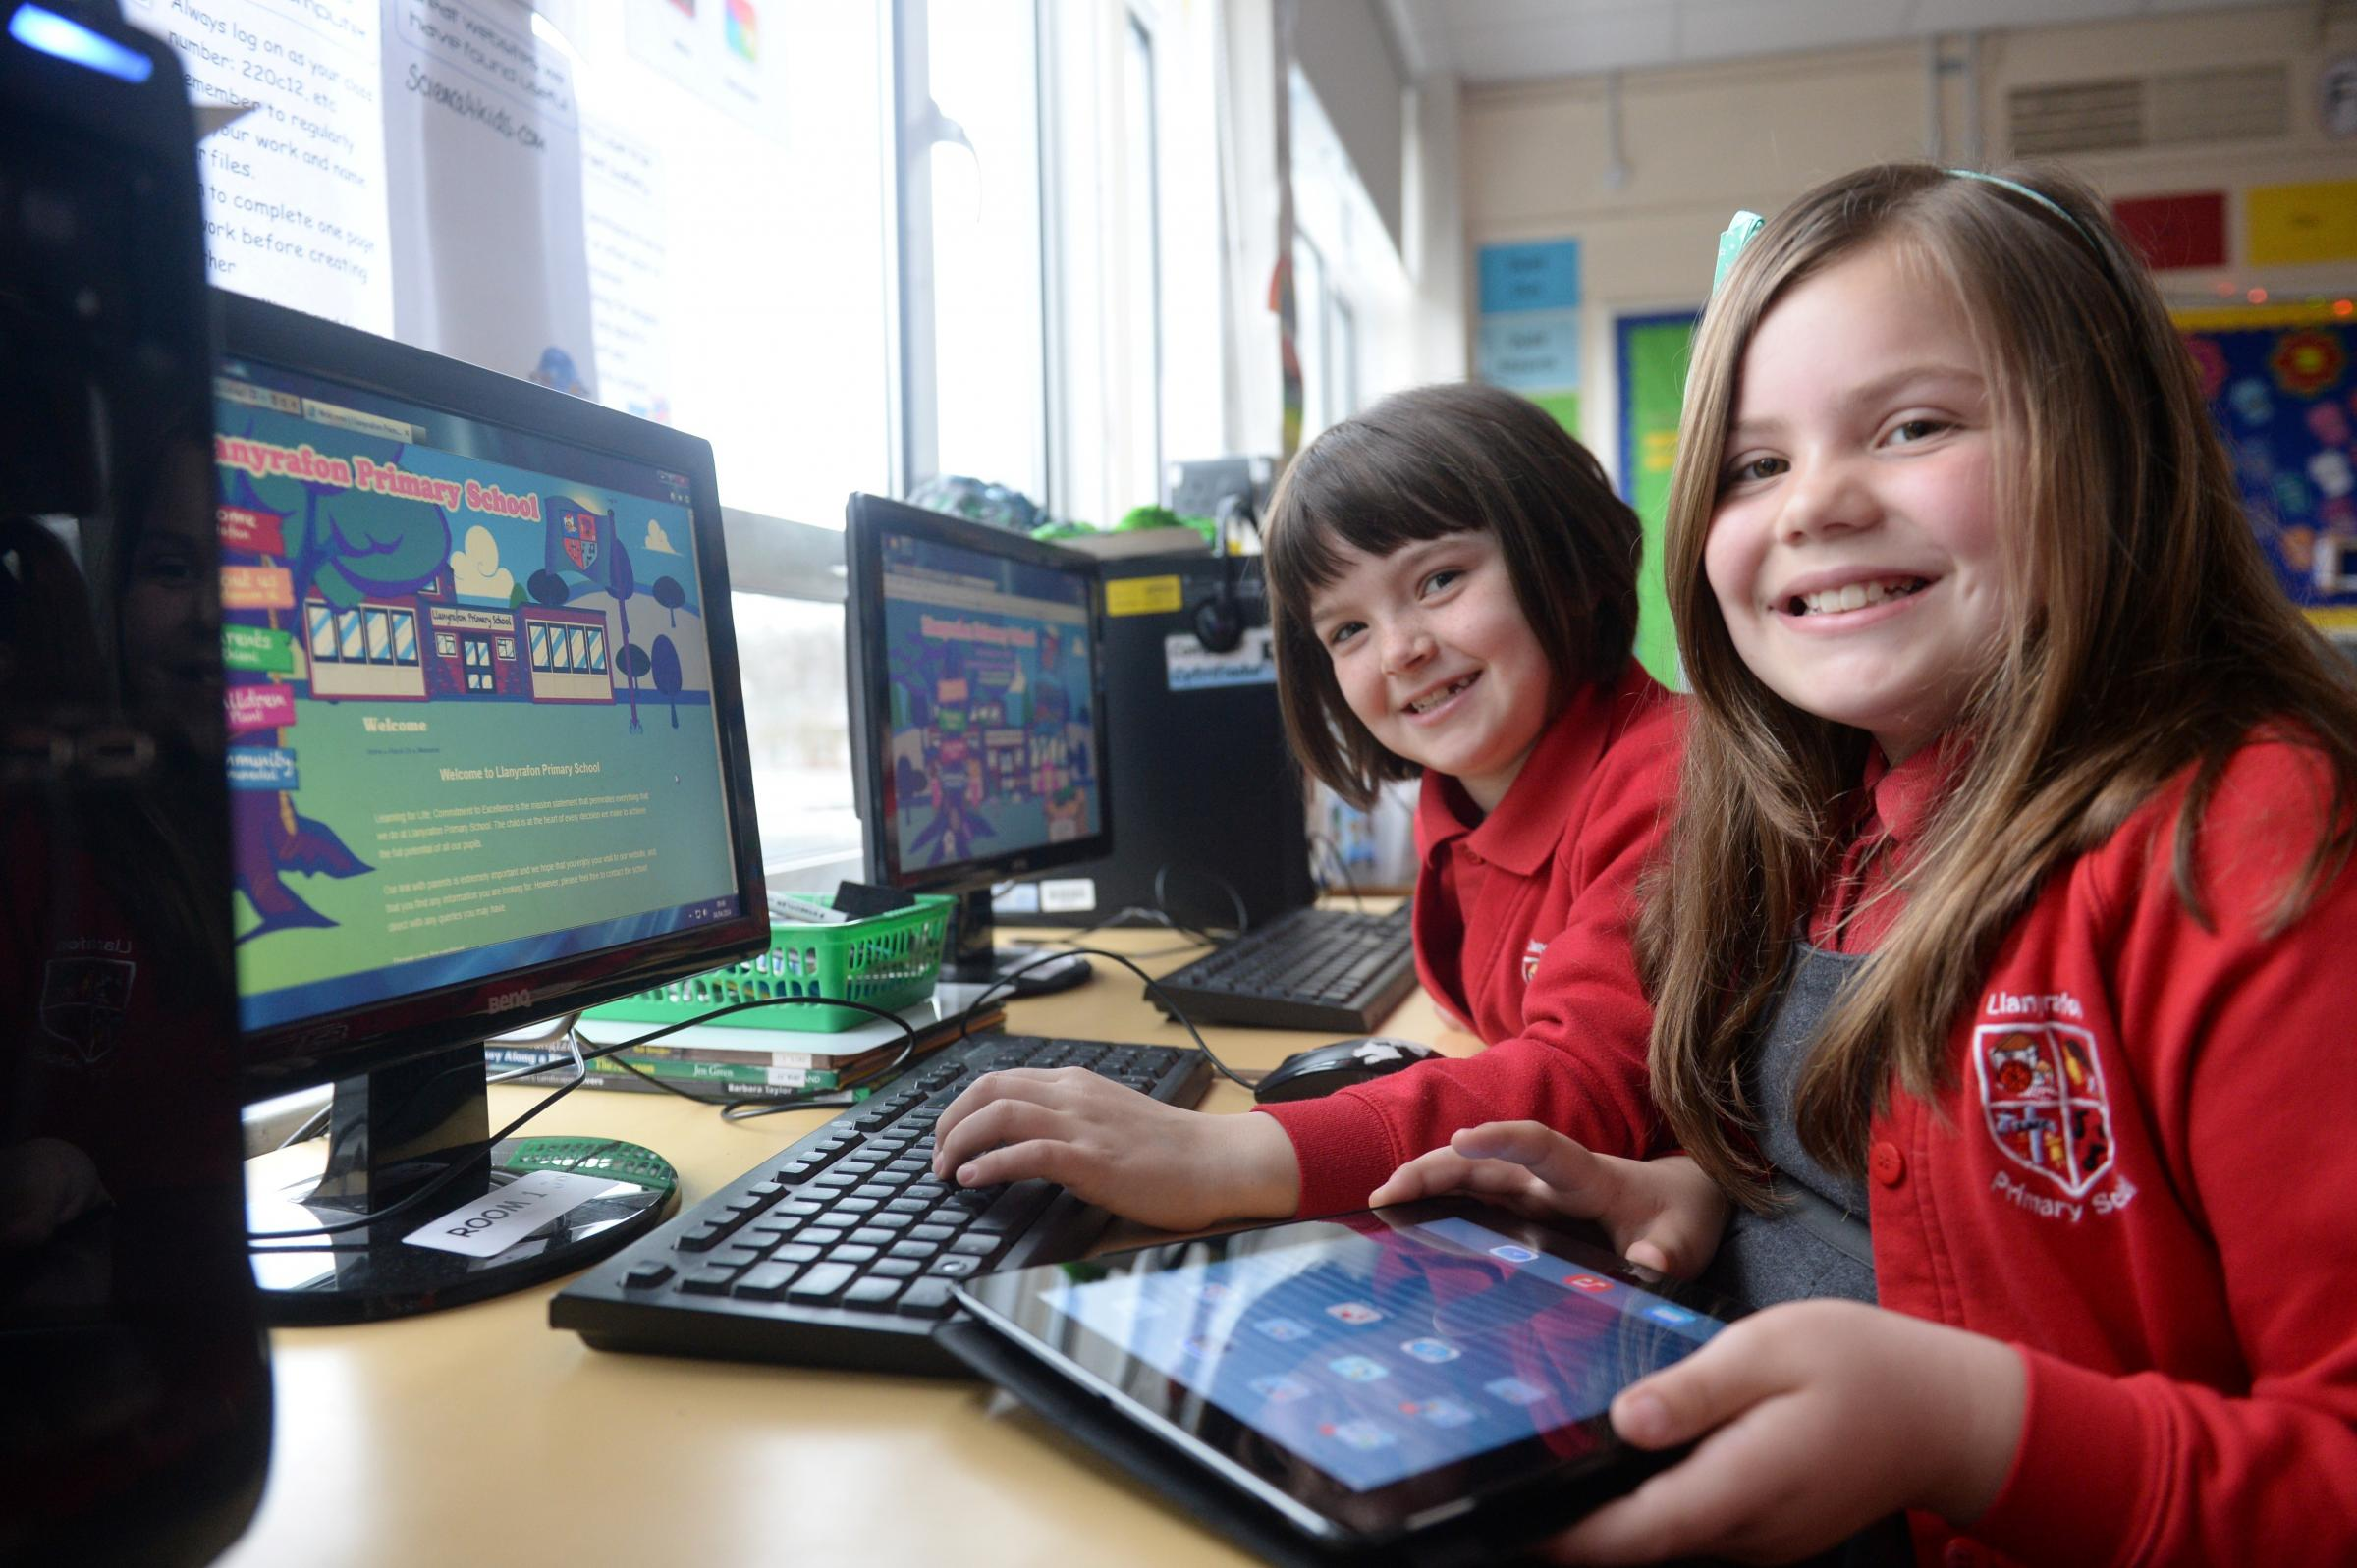 SCHOOL OF THE WEEK: Llanyrafon Primary School